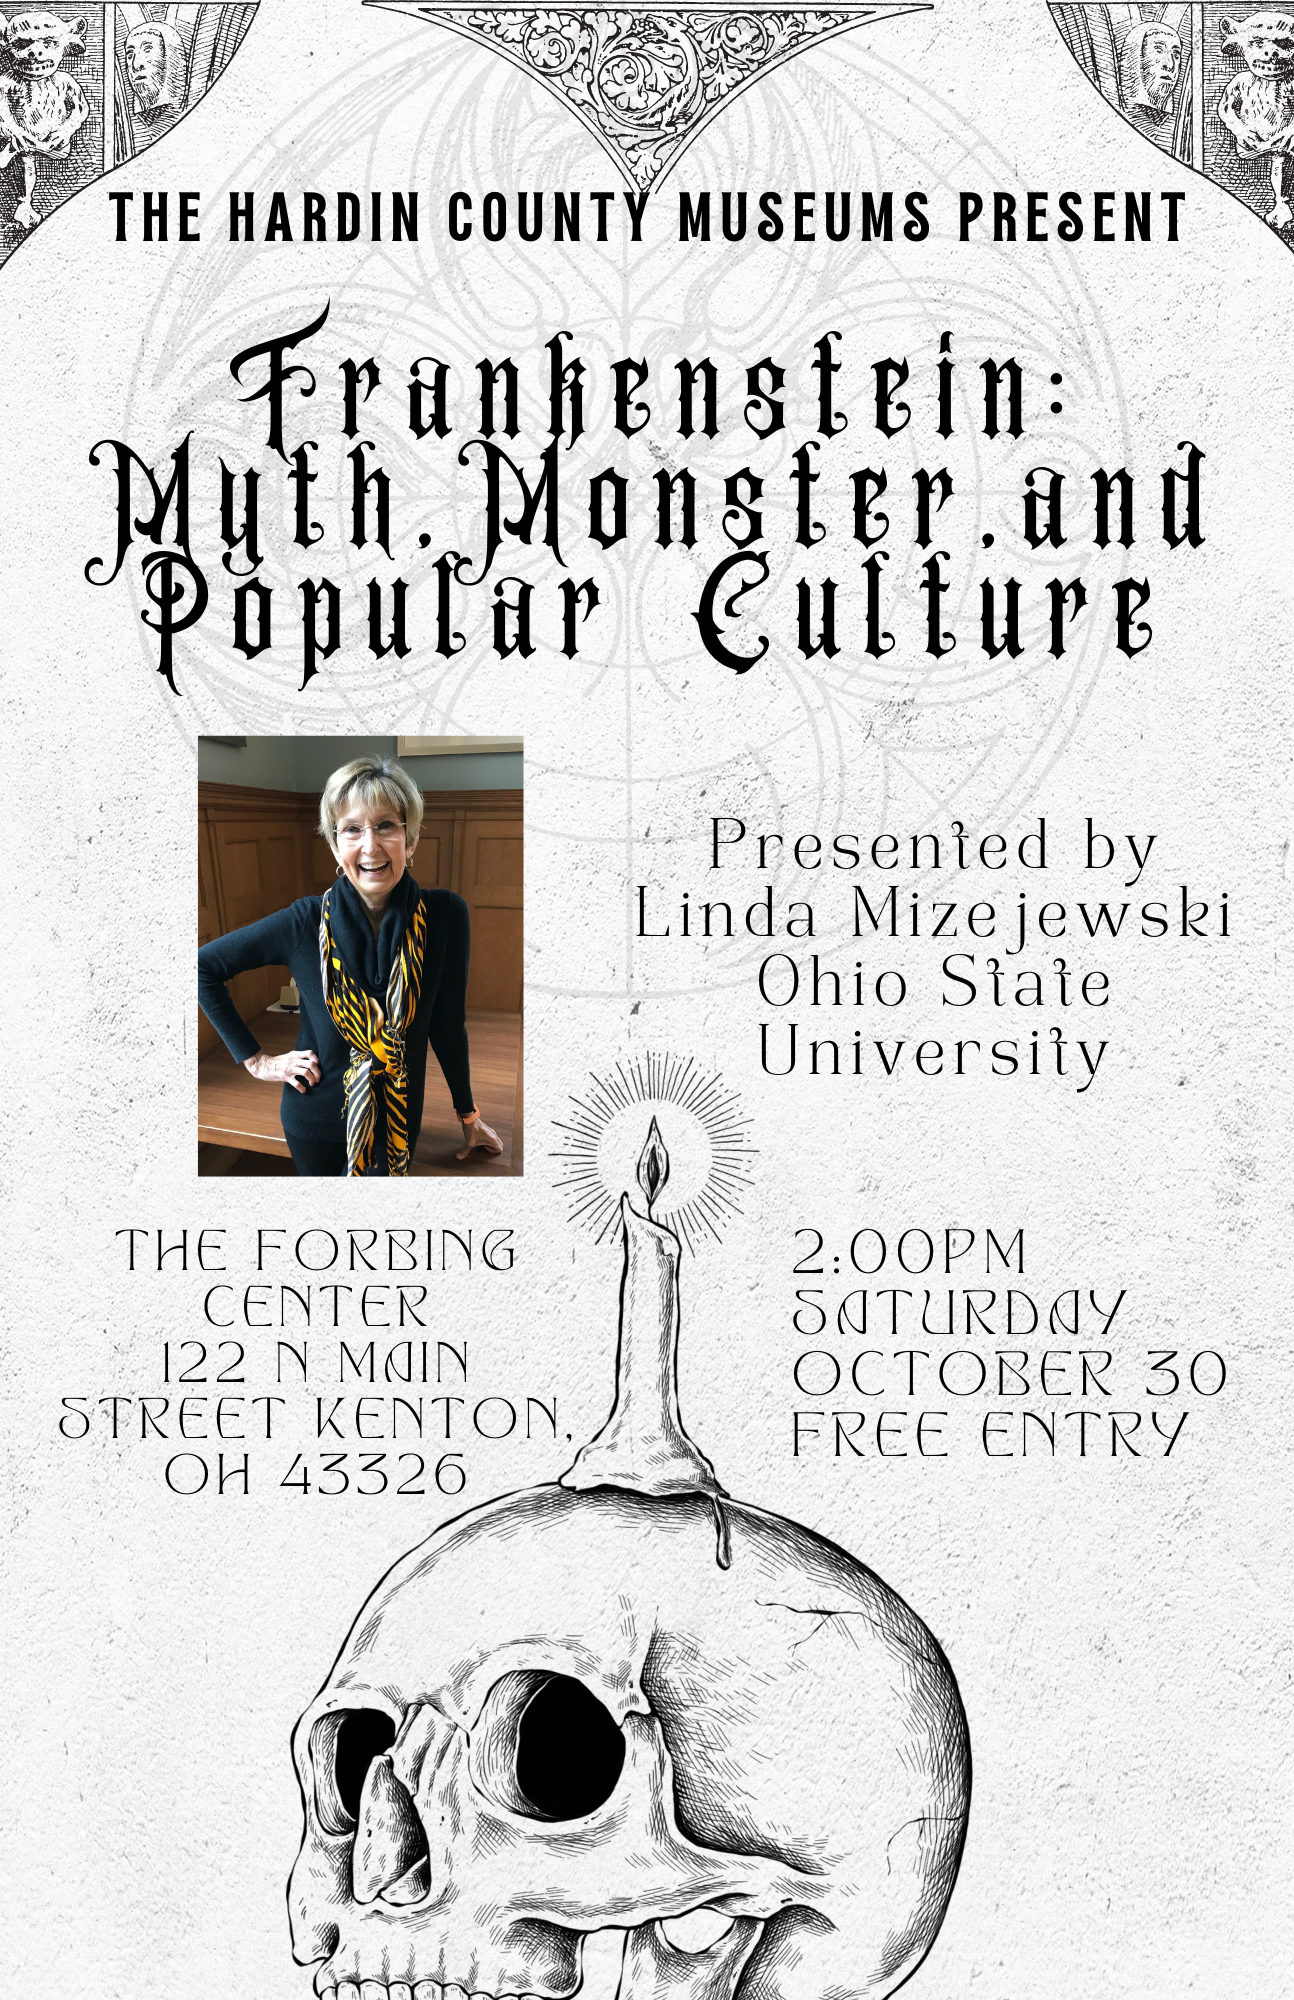 The Hardin County Museums Present Frankenstein: Myth, Monster, and Pop Culture